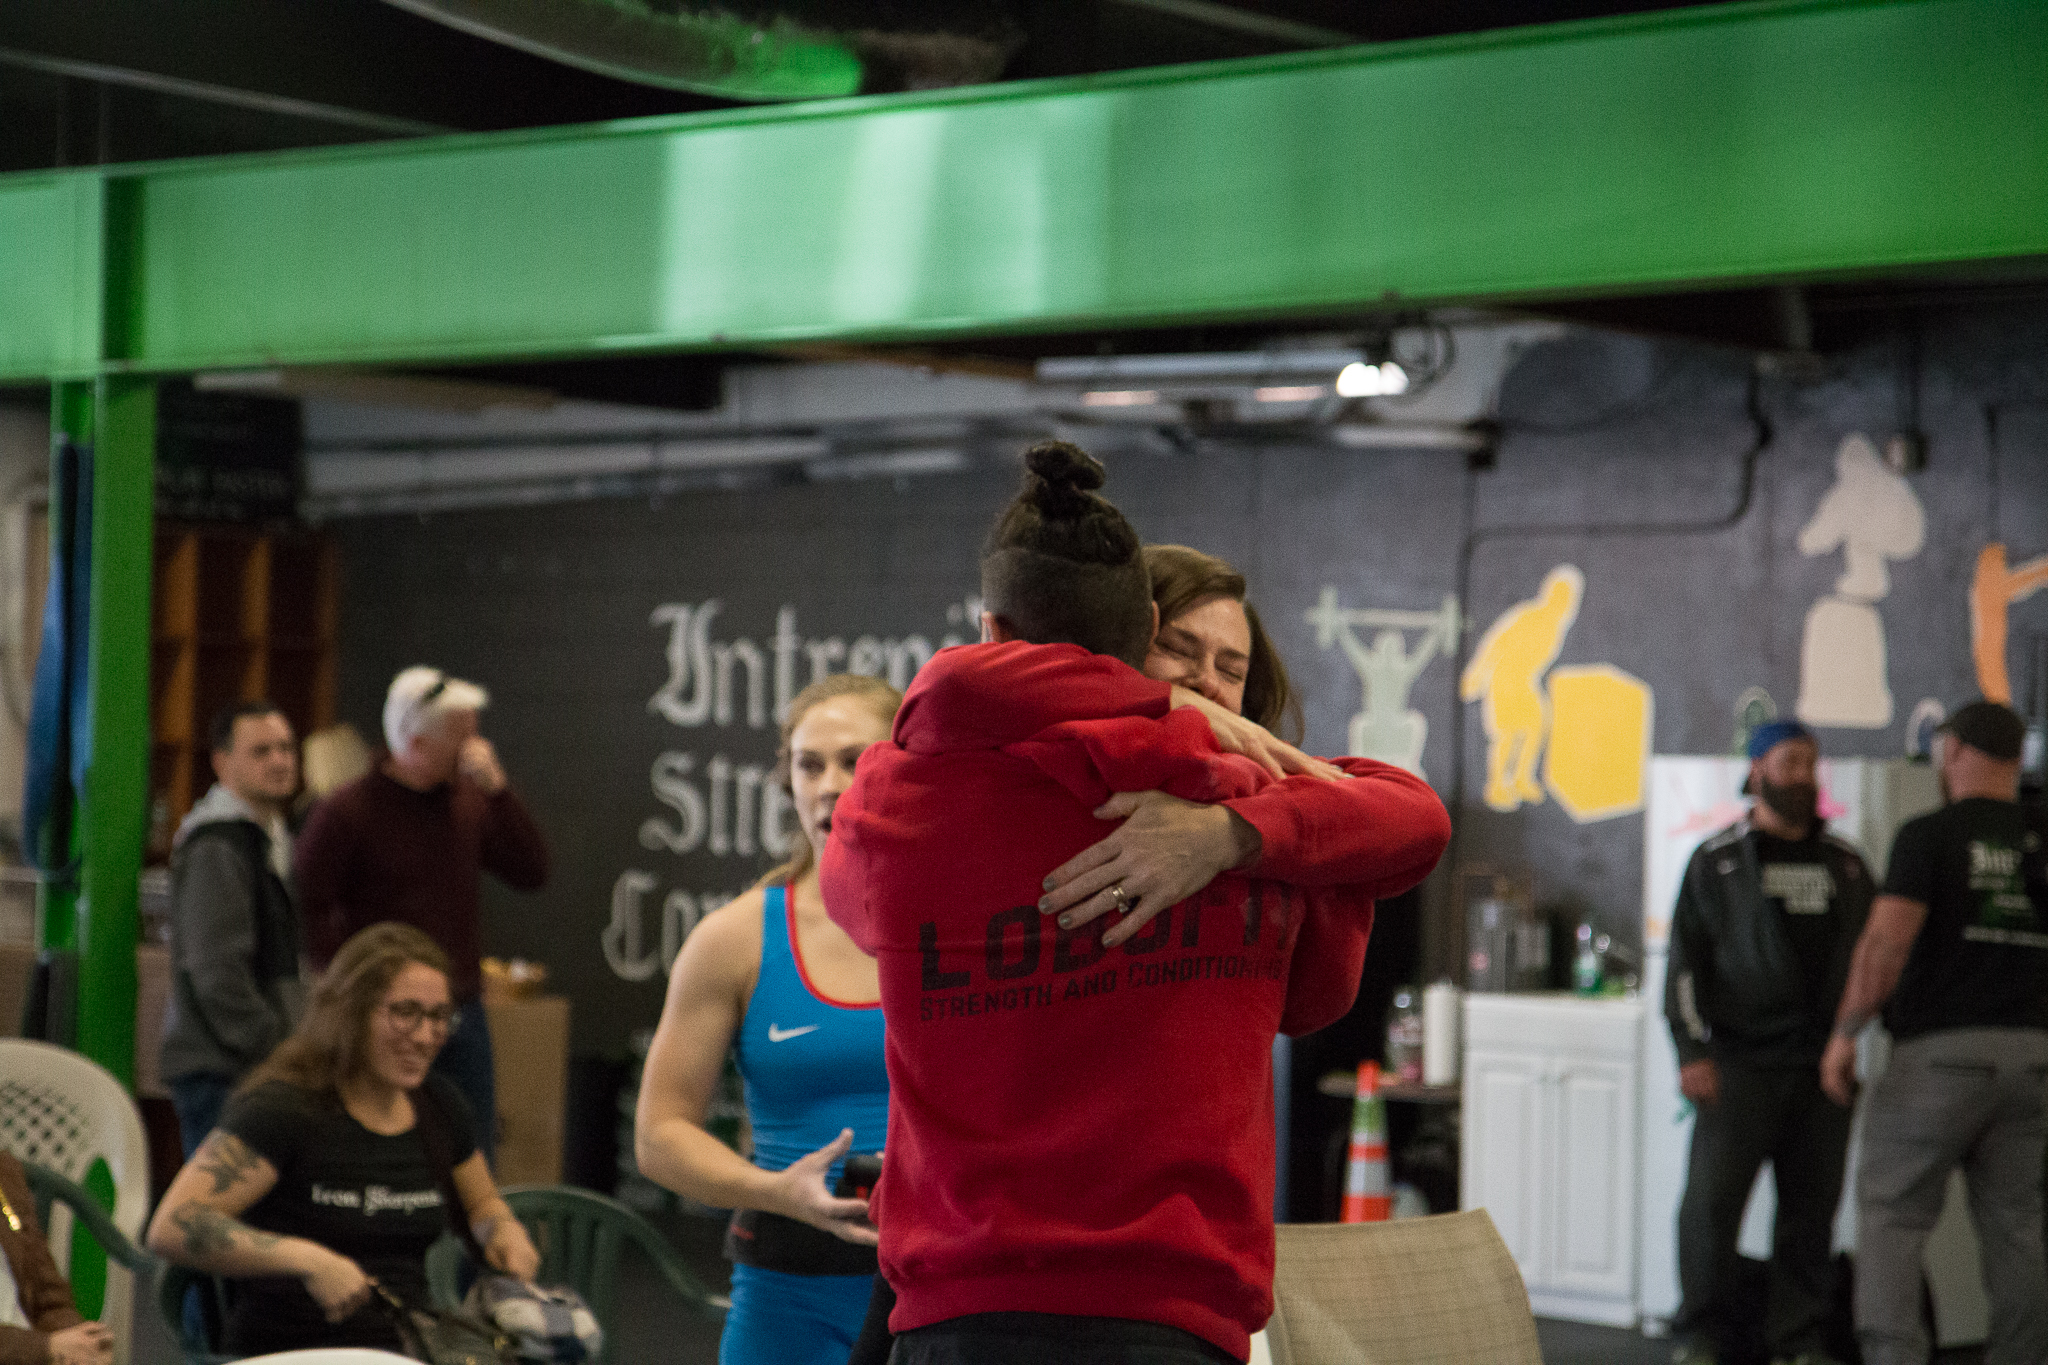 warwick-new-york-intrepid-strength-conditioning-winter-open-weightlifting-meet-weightlifting-photography (15 of 15).jpg